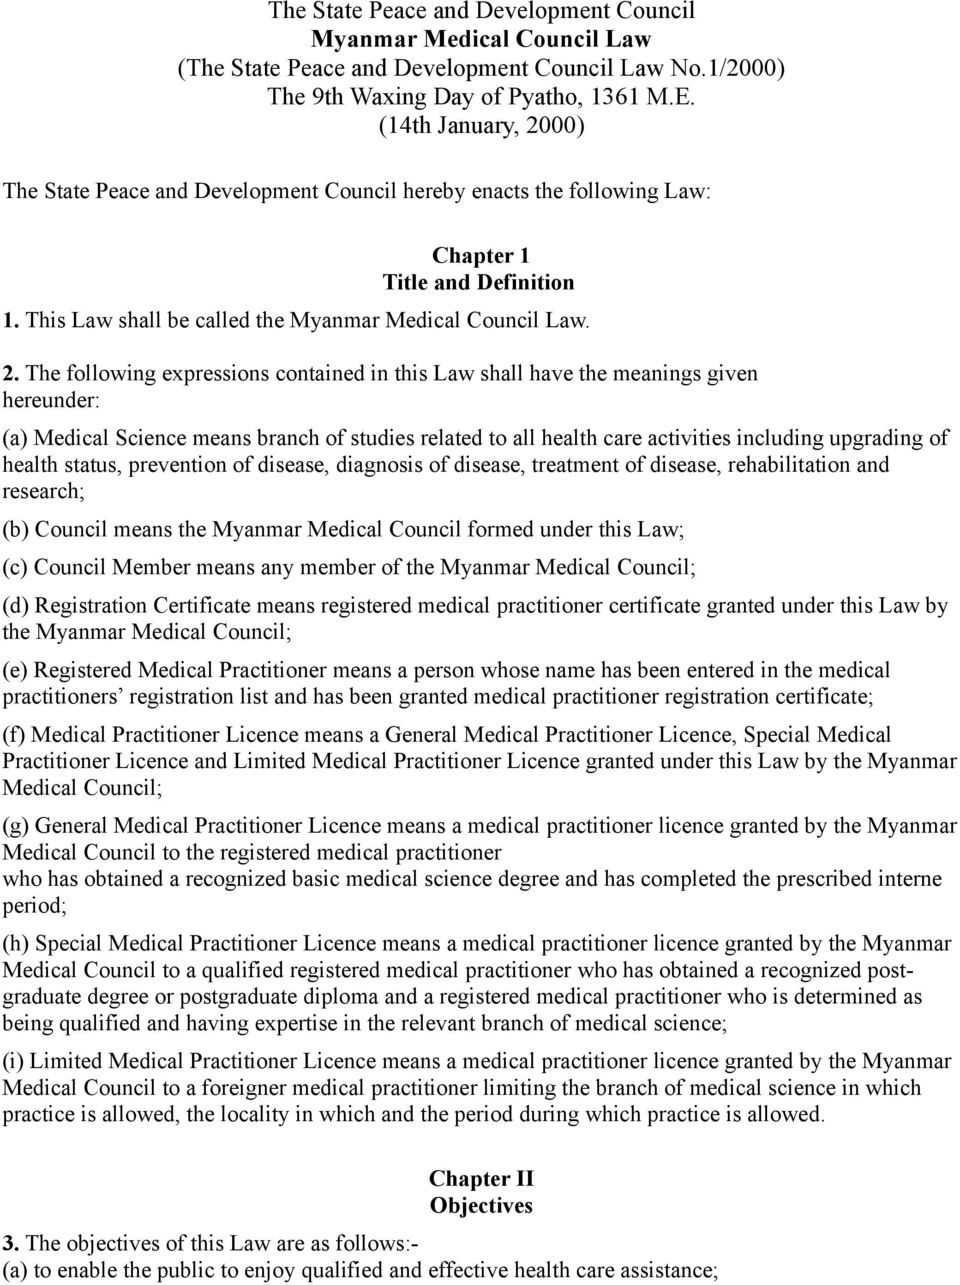 00) The State Peace and Development Council hereby enacts the following Law: Chapter 1 Title and Definition 1. This Law shall be called the Myanmar Medical Council Law. 2.